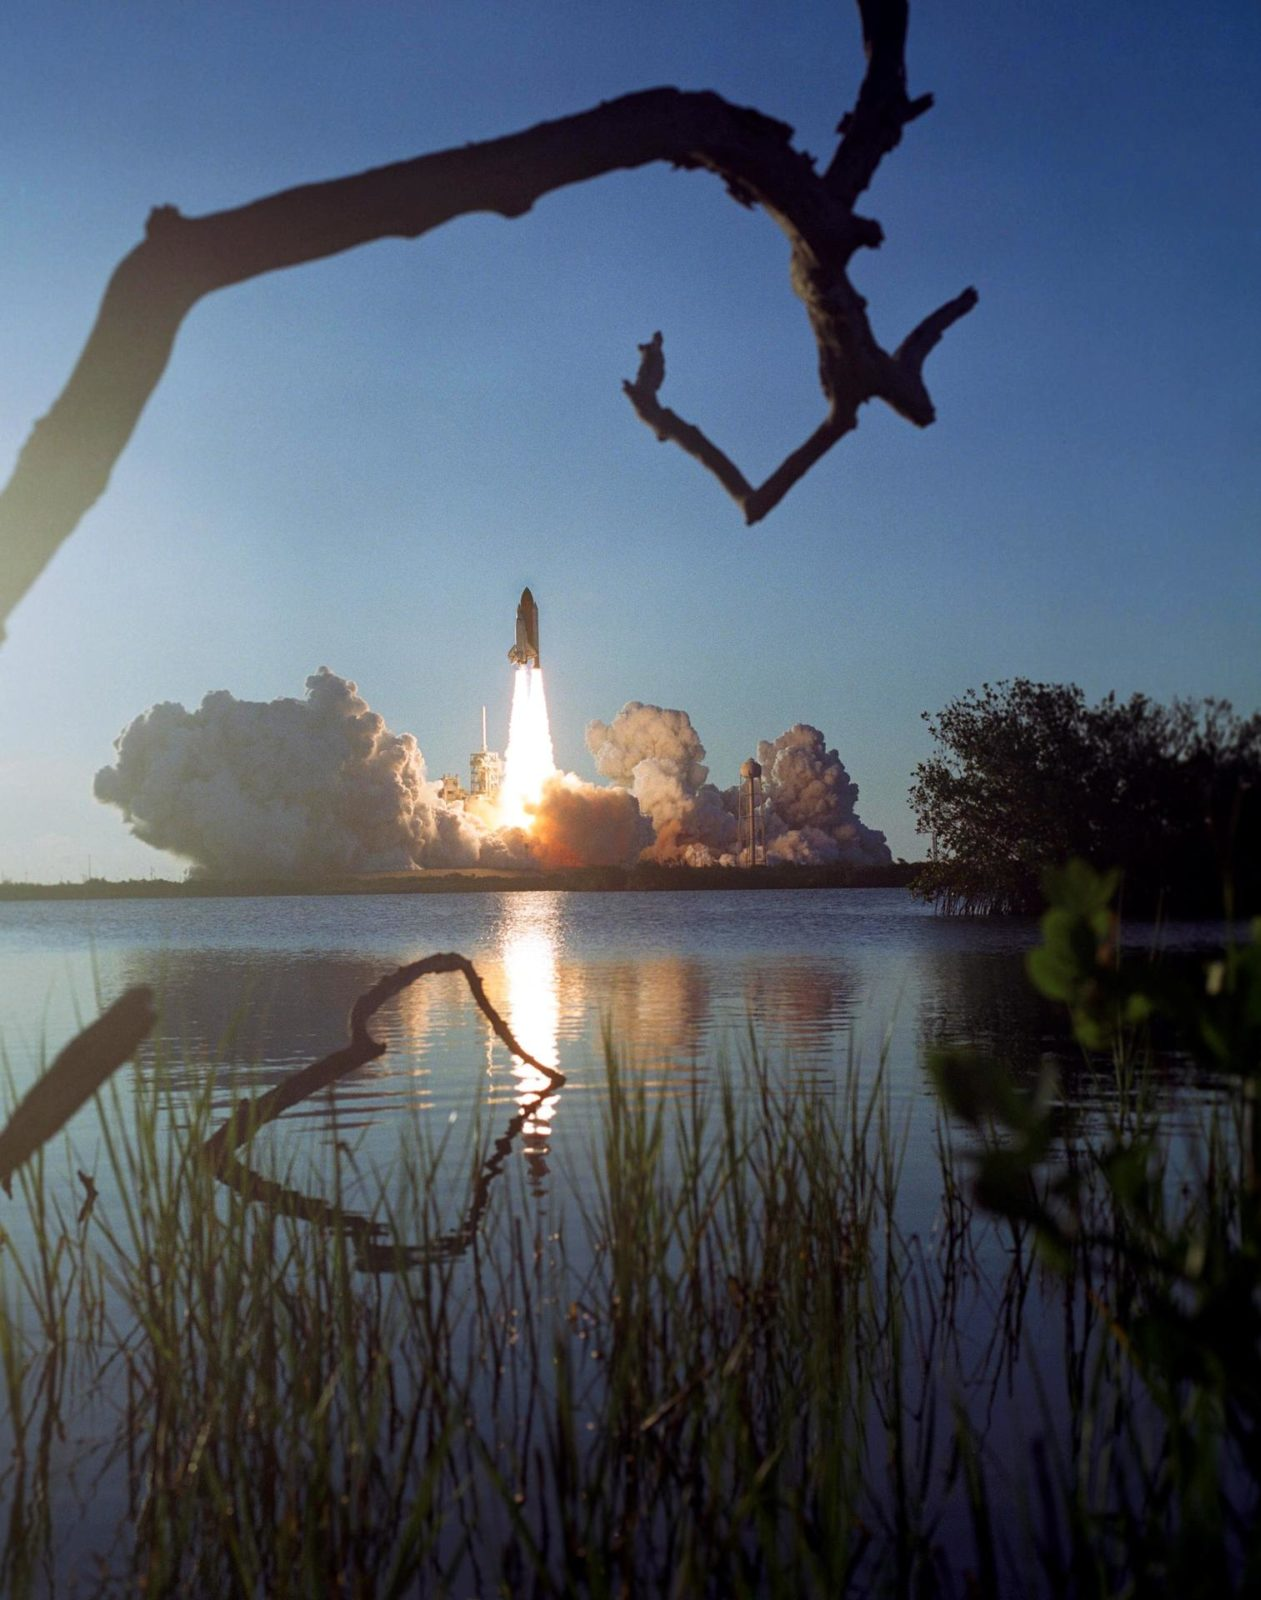 """STS117-S-032 (8 June 2007) --- Framed here by branches, the Space Shuttle Atlantis and its seven-member STS-117 crew head toward Earth-orbit and a scheduled link-up with the International Space Station. Liftoff from Kennedy Space Center's launch pad 39A occurred at 7:38 p.m. (EDT) on June 8, 2007. Onboard are astronauts Rick Sturckow, commander; Lee Archambault, pilot; Jim Reilly, Patrick Forrester, John """"Danny"""" Olivas, Steven Swanson and Clayton Anderson, all mission specialists. Anderson will join Expedition 15 in progress to serve as a flight engineer aboard the station. Atlantis will dock with the orbital outpost on Sunday, June 10, to begin a joint mission that will increase the complex's power generation capability. Using the shuttle and station robotic arms and conducting three scheduled spacewalks, the astronauts will install another set of giant solar array wings on the station and retract another array, preparing it for a future move. STS117-S-032"""